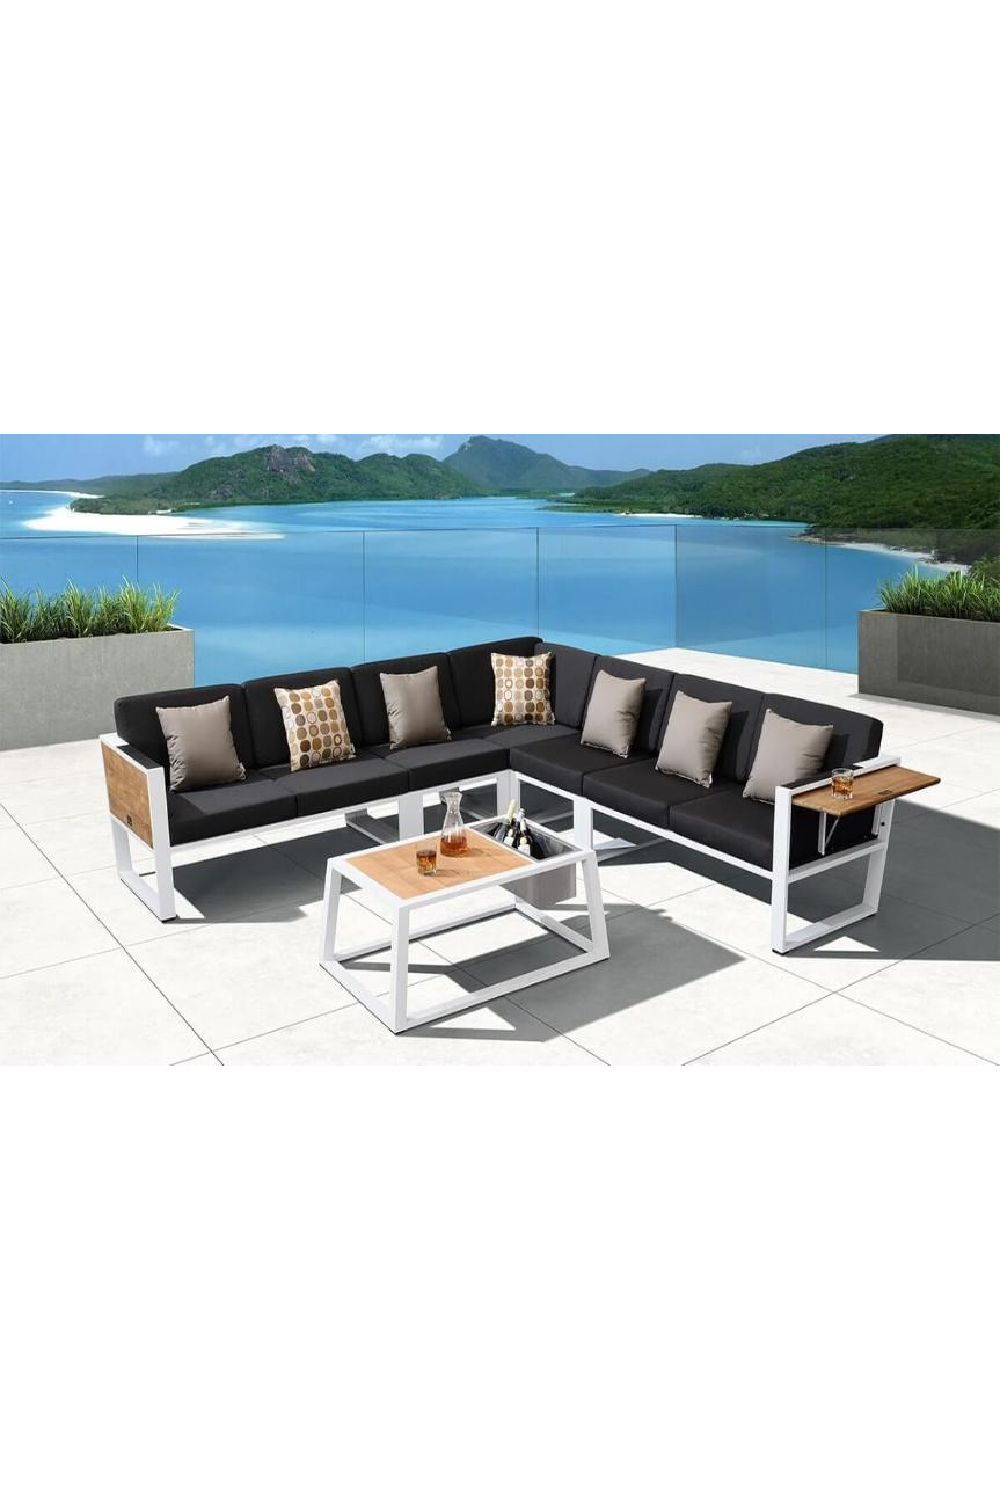 Outdoor Sectional Lounge Set | Higold York